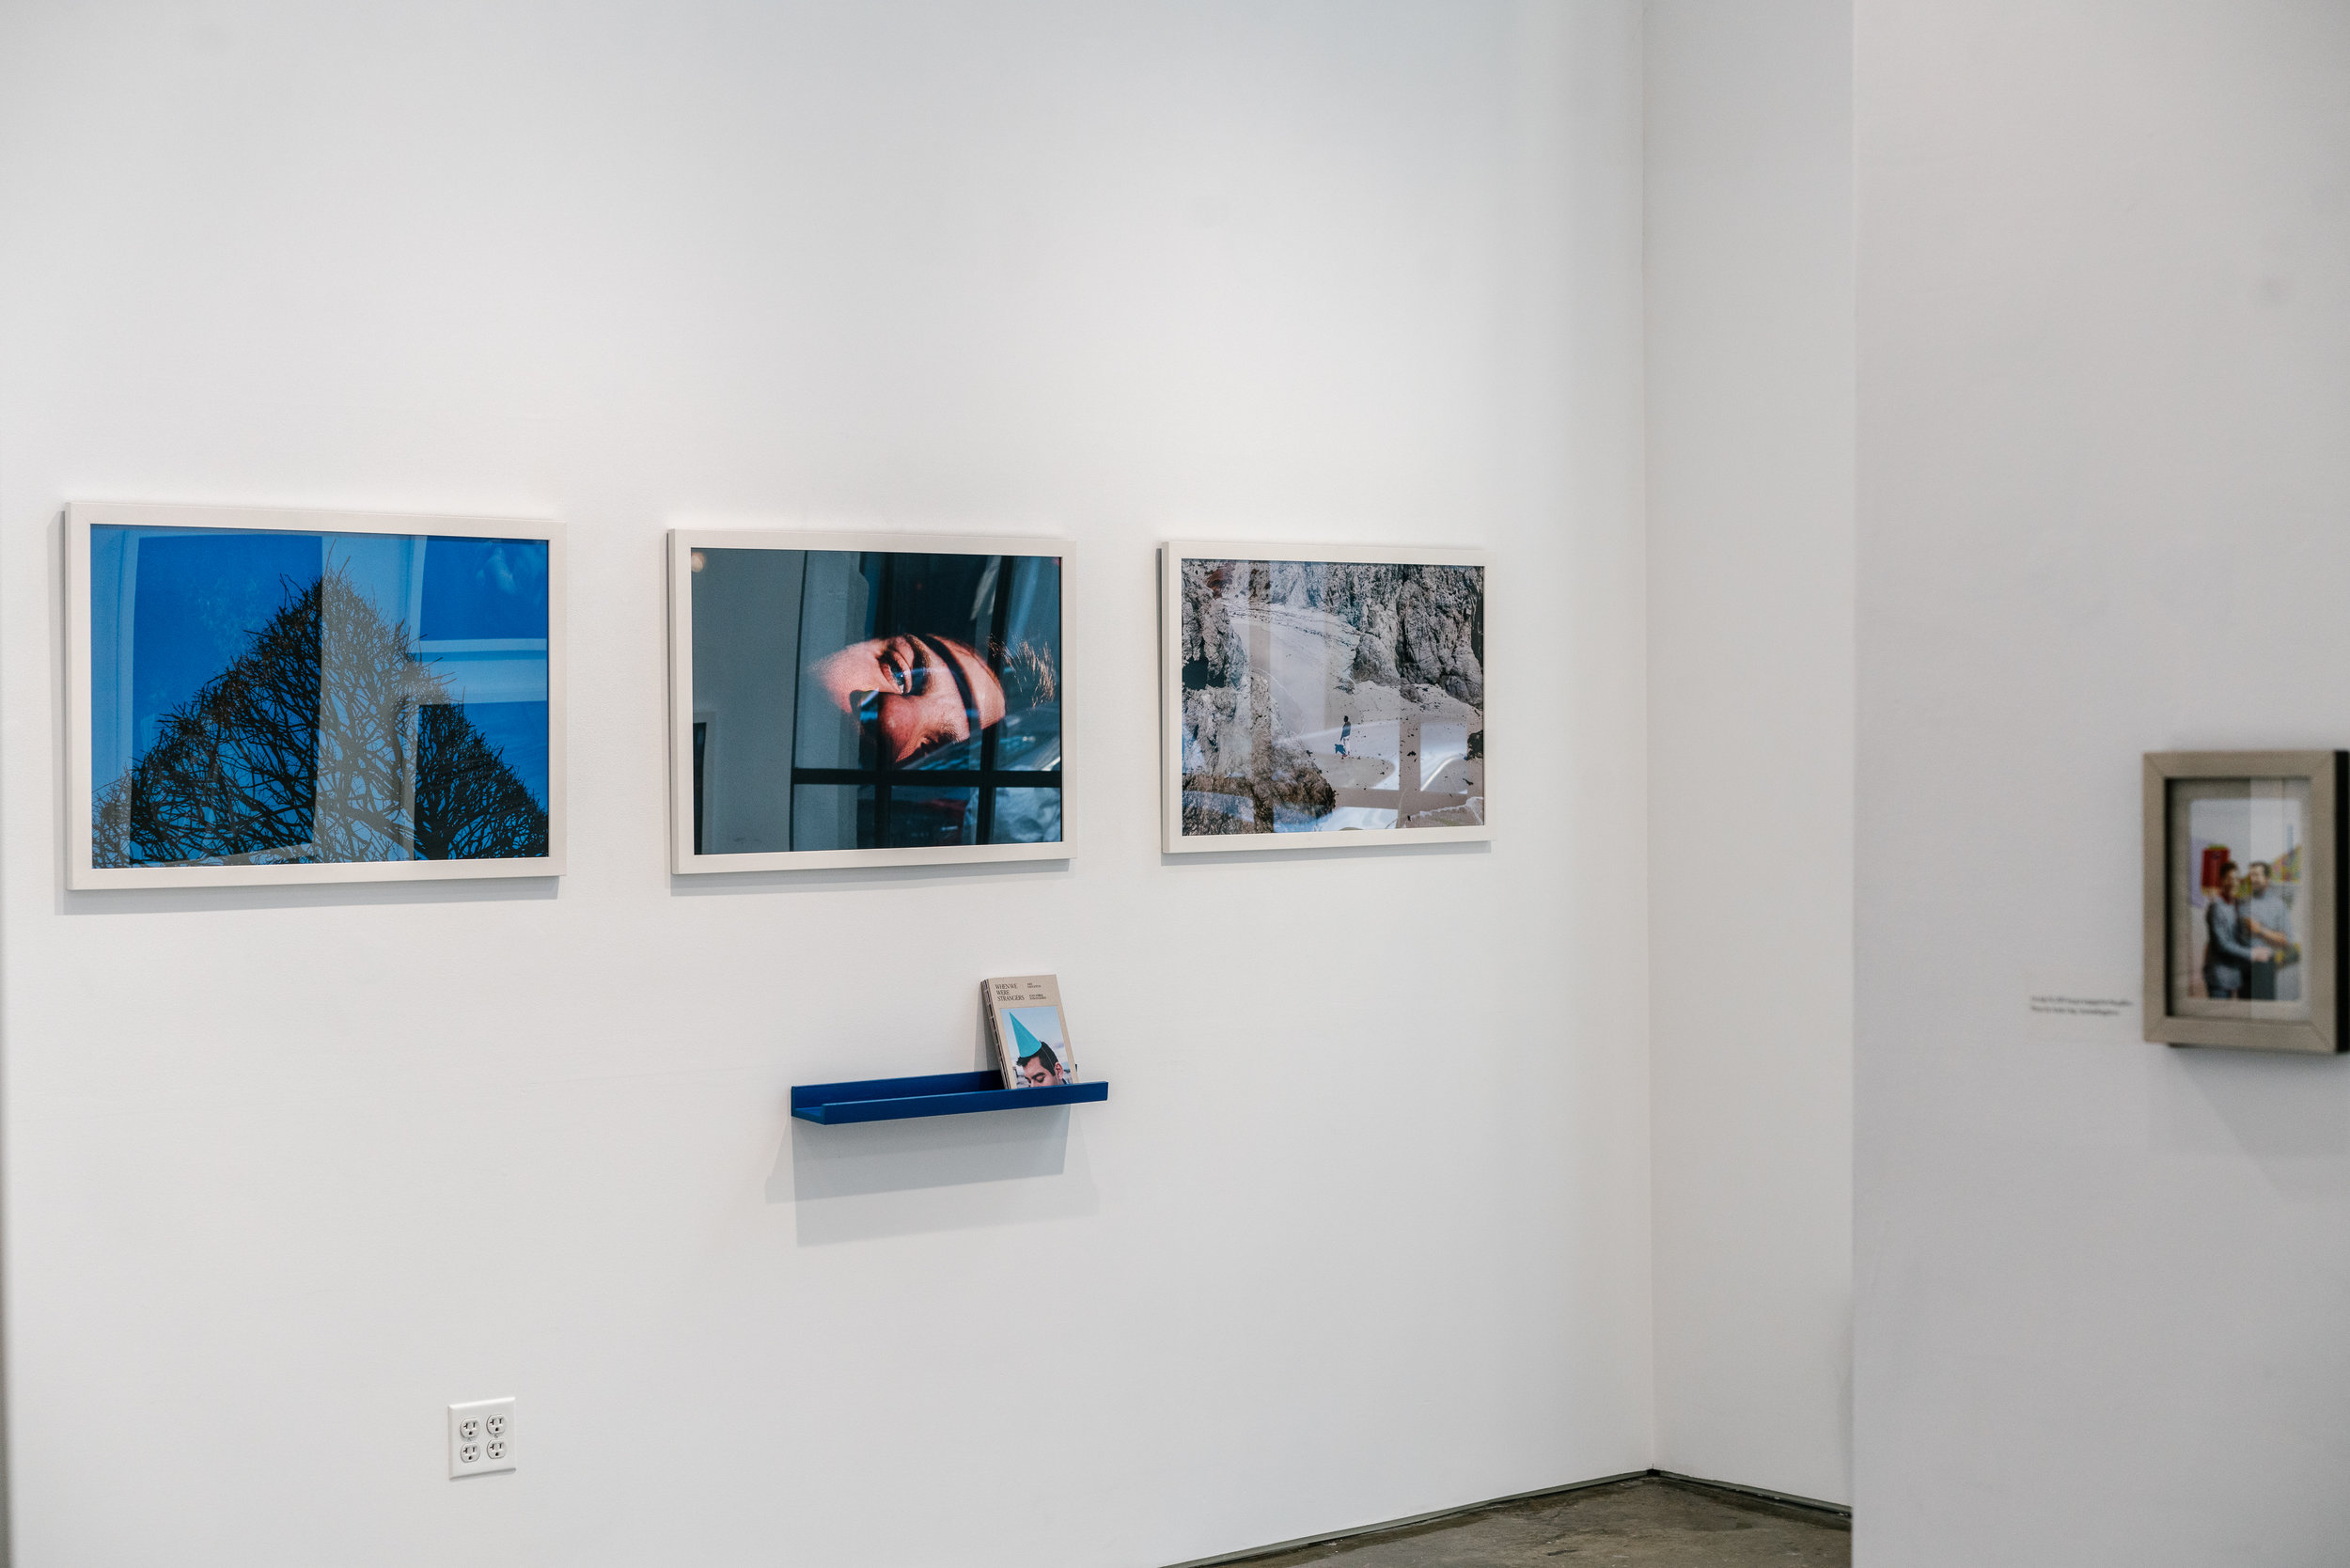 DATE: JANUARY 2019, STRANGERS EXHIBIT